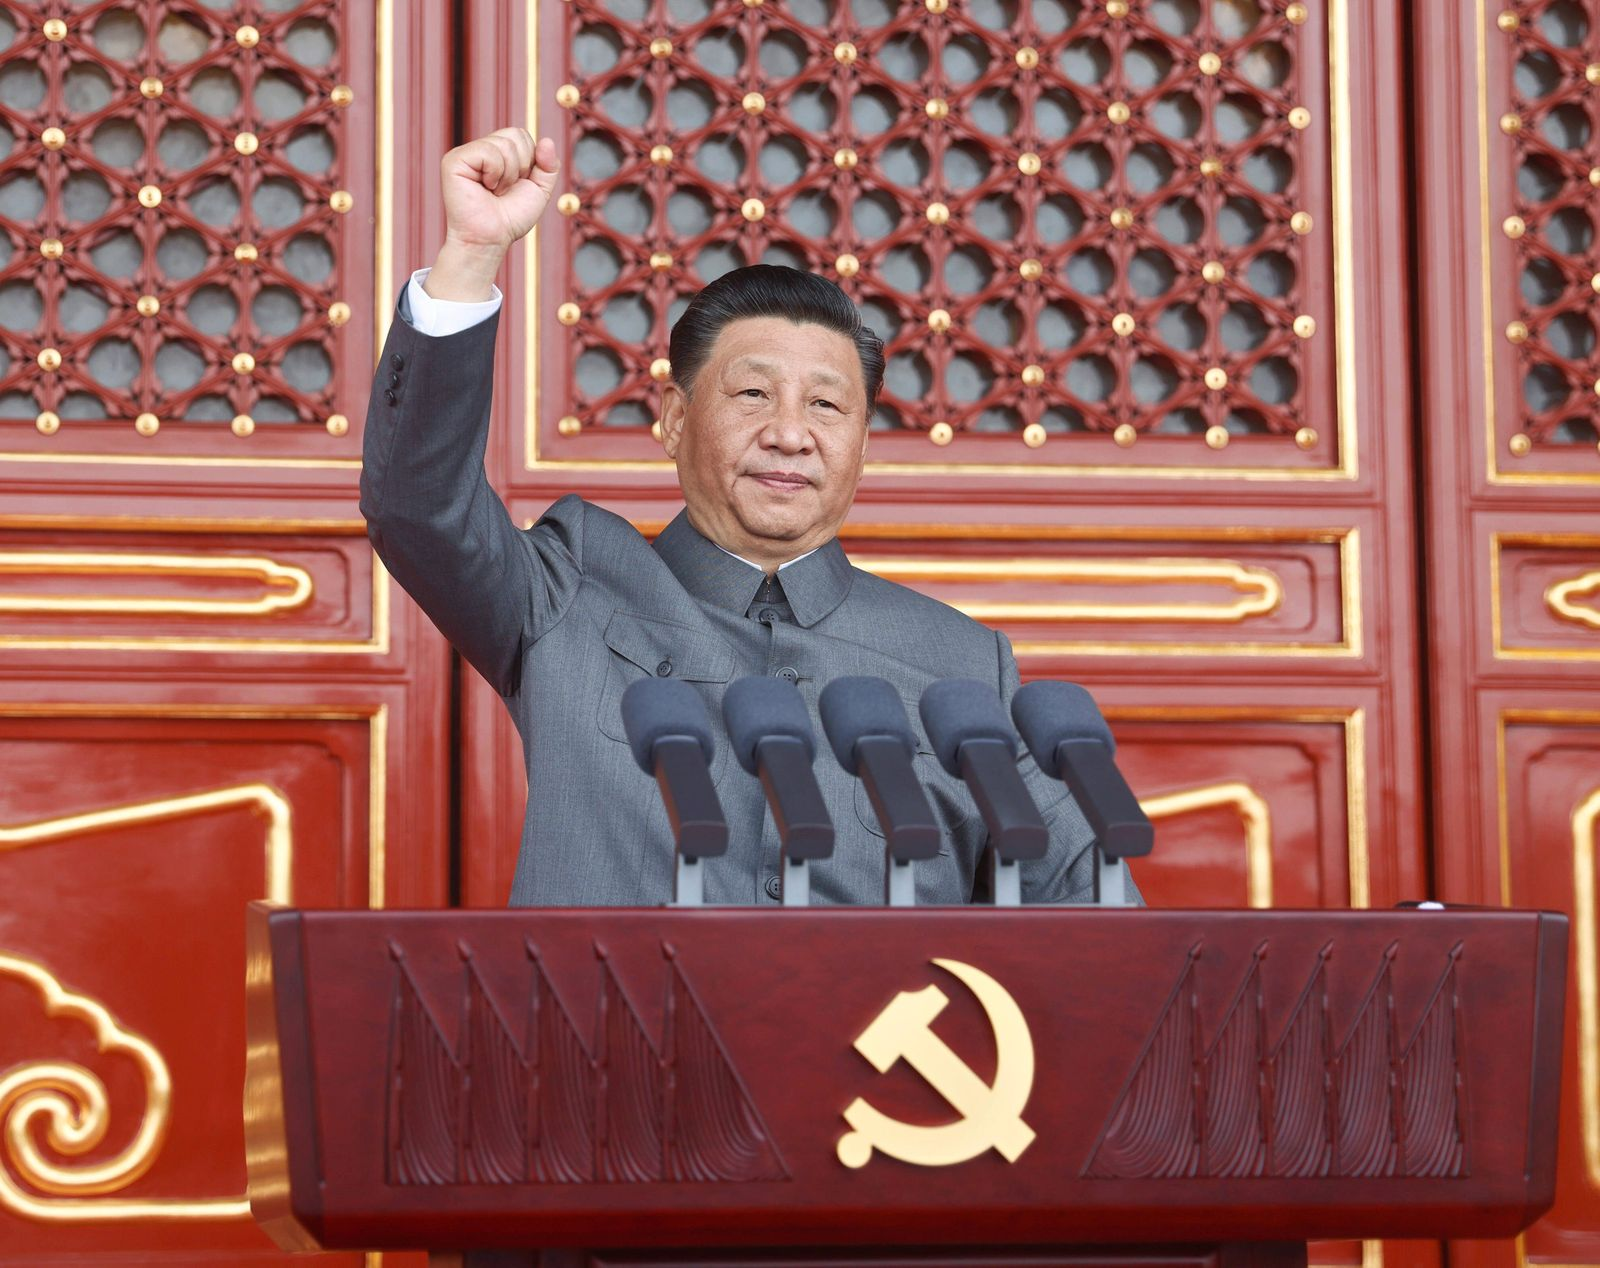 (210701) -- BEIJING, July 1, 2021 -- Xi Jinping, general secretary of the Communist Party of China (CPC) Central Commit